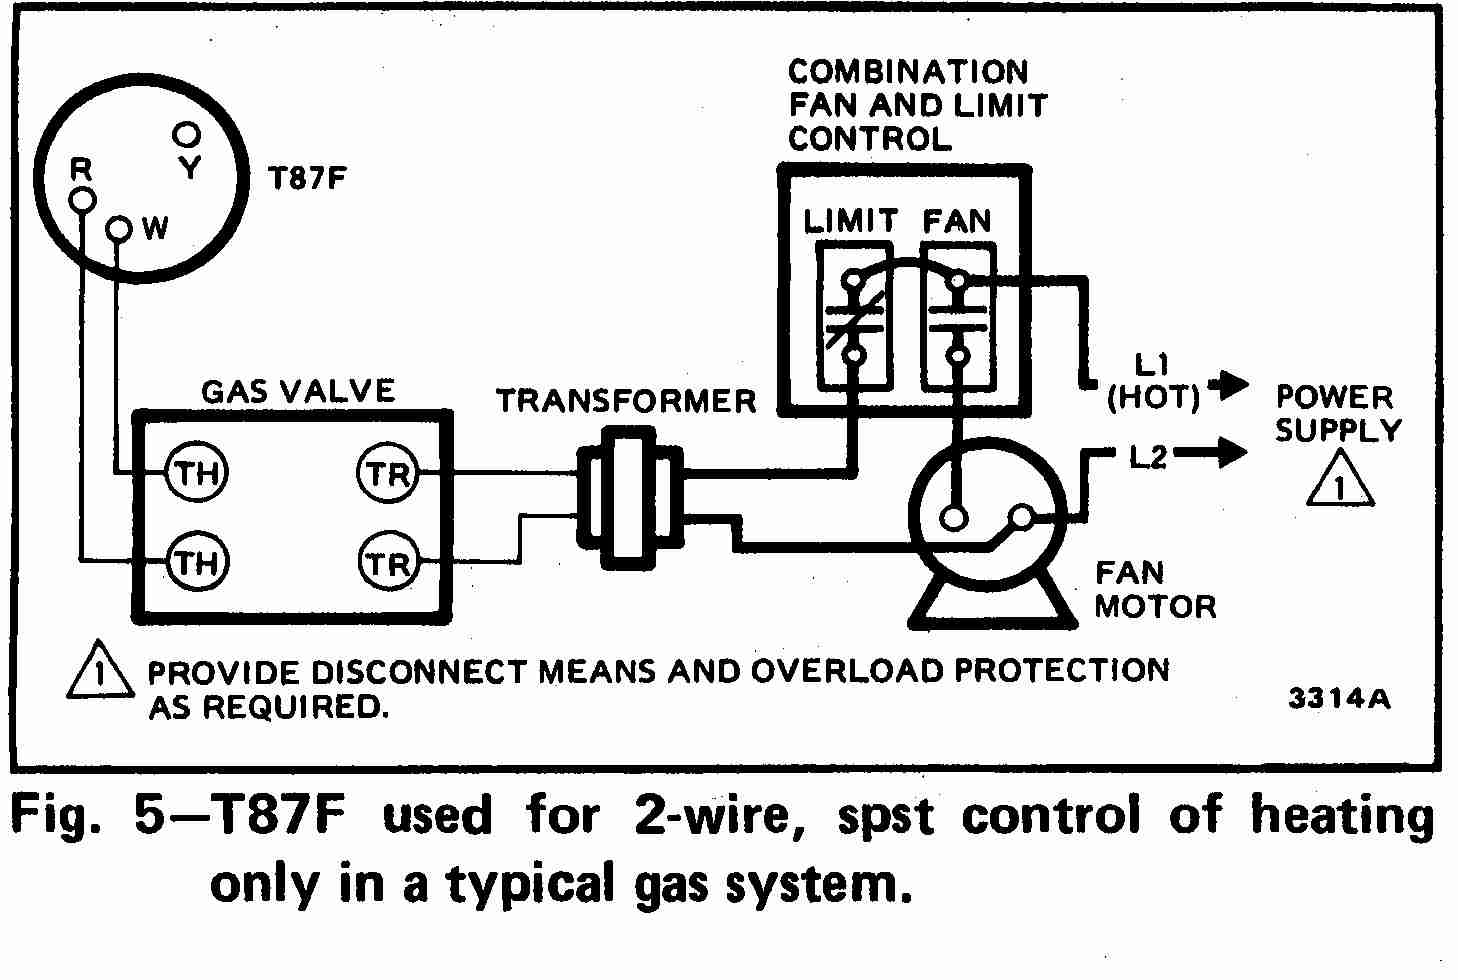 Room thermostat wiring diagrams for HVAC systems on